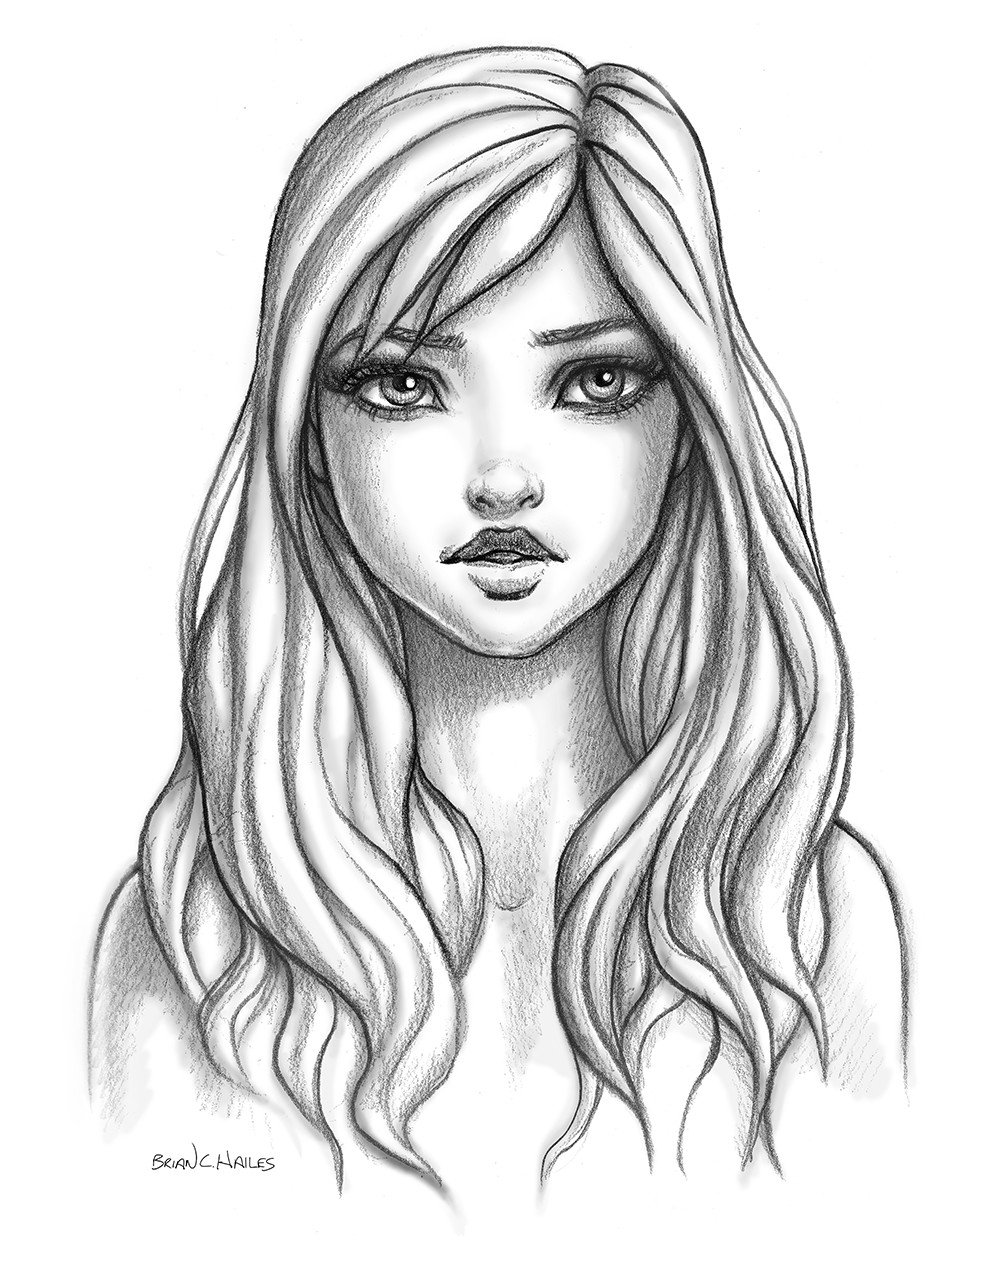 cartoom drawings artstation how to draw a female face cartoon style drawings cartoom